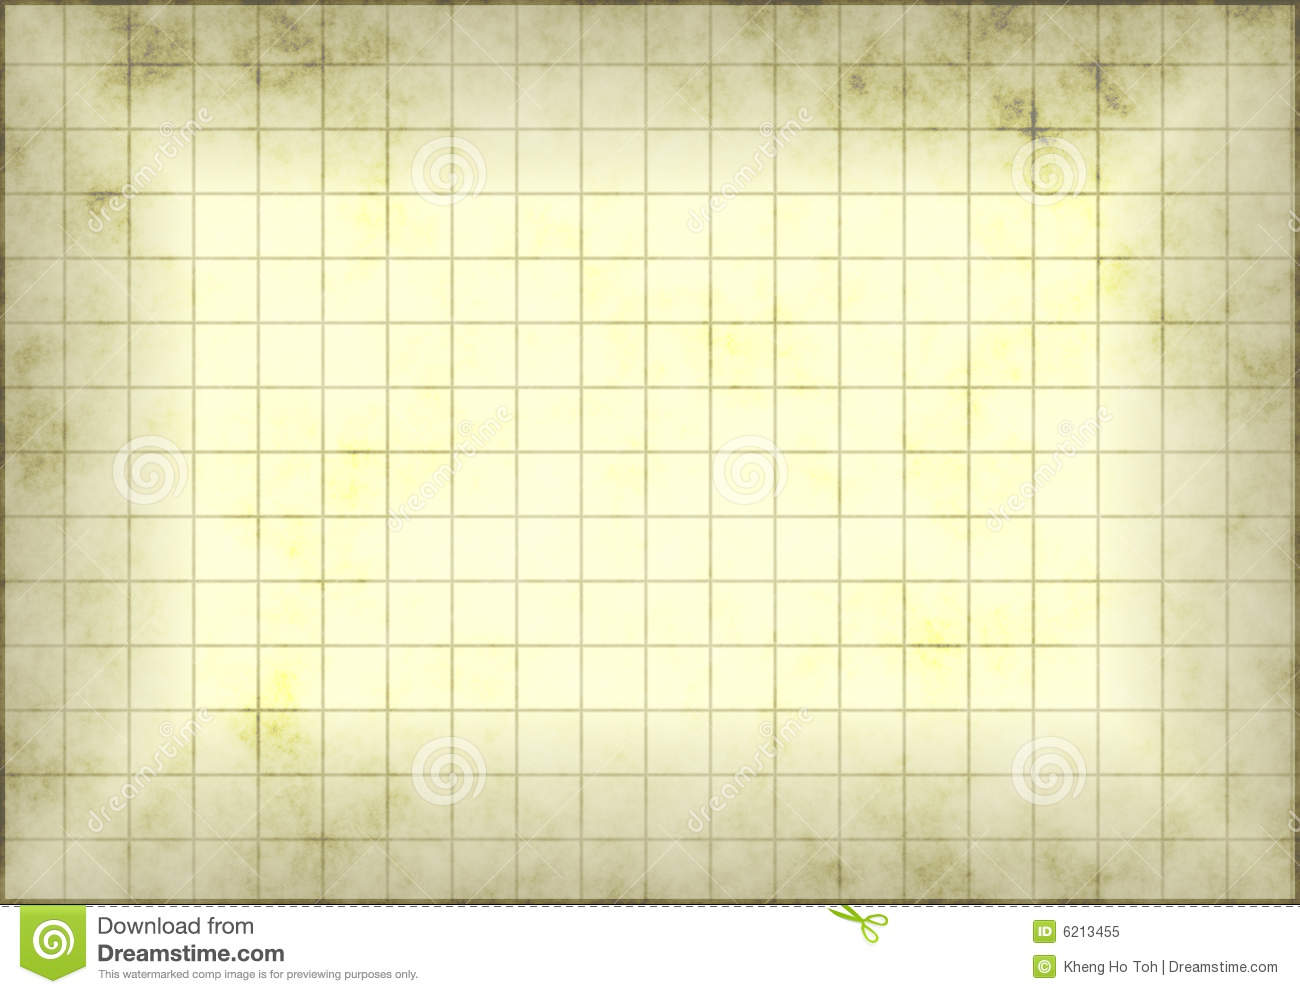 worksheet Graph Paper Free grunge graph paper royalty free stock photo image 6213455 paper